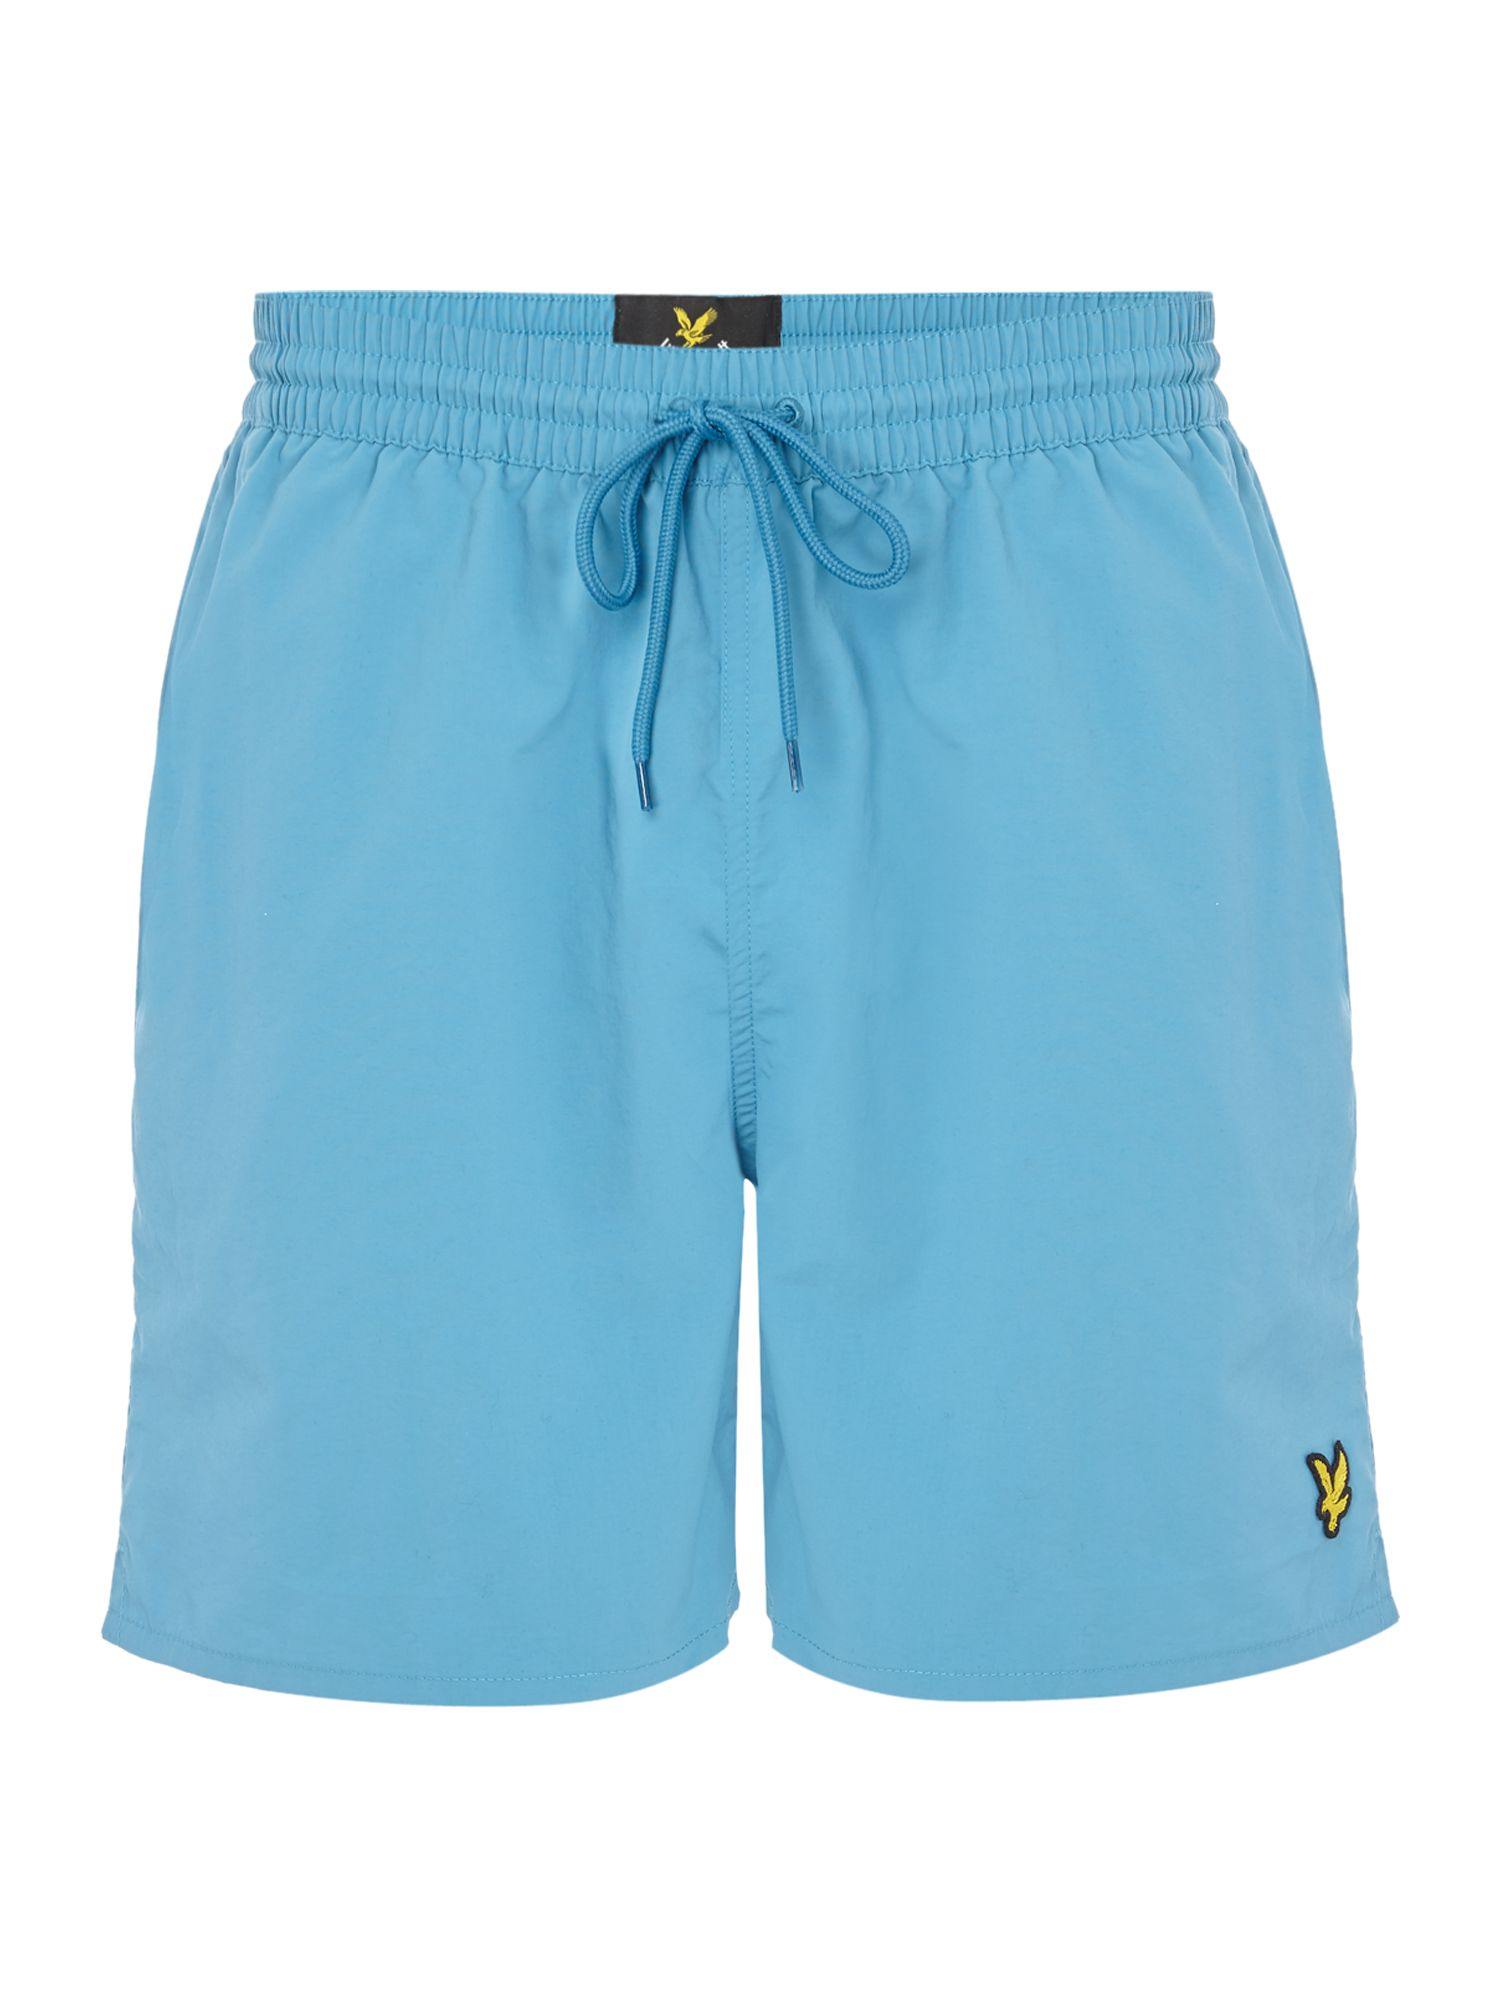 Men's Lyle and Scott Classic Plain Logo Short, Blue